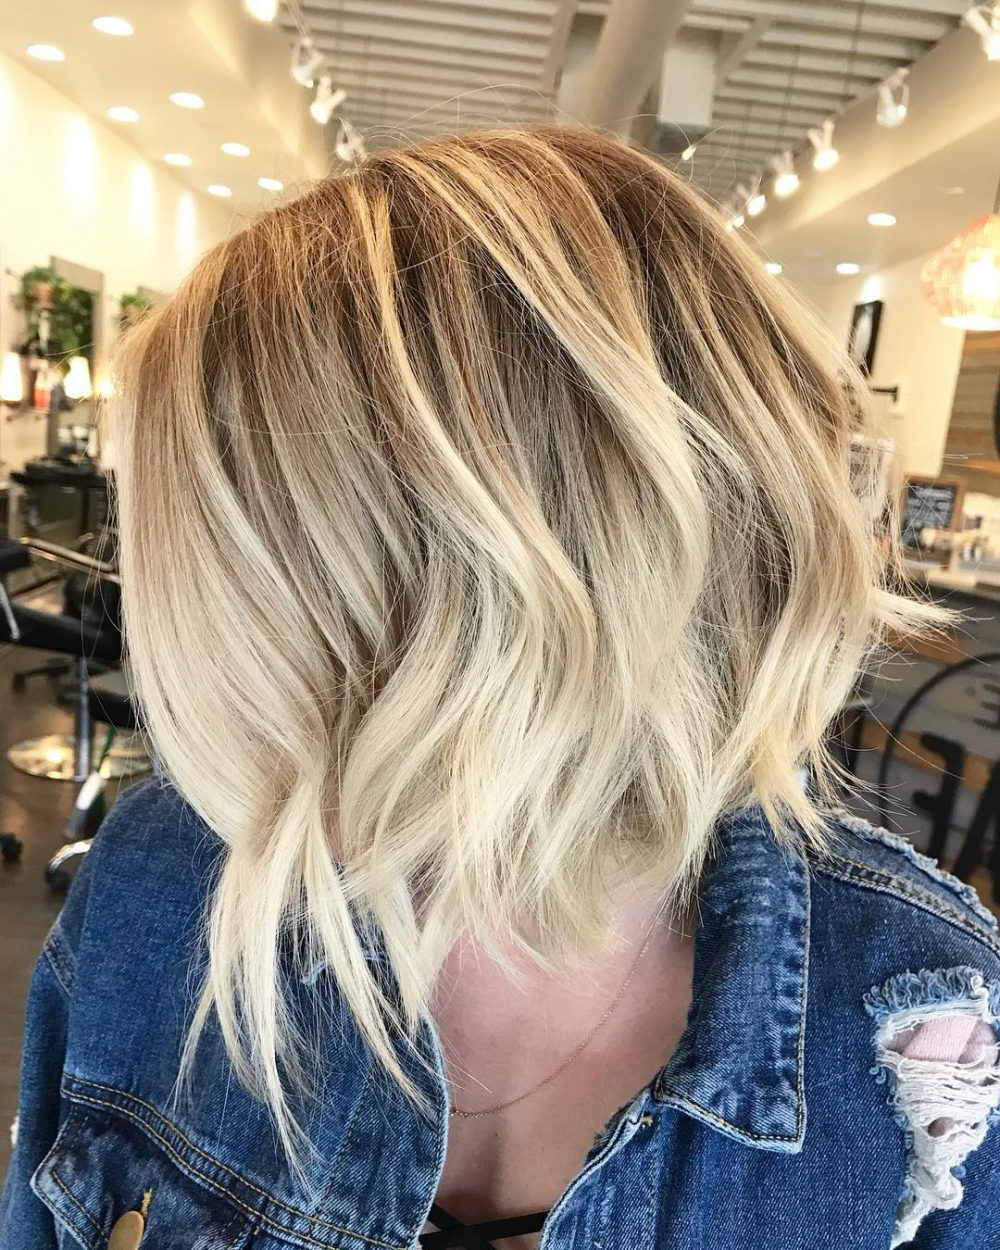 34 Best Choppy Layered Hairstyles (that Will Flatter Anyone) Pertaining To Widely Used Bedhead Layers For Long Hairstyles (View 10 of 20)